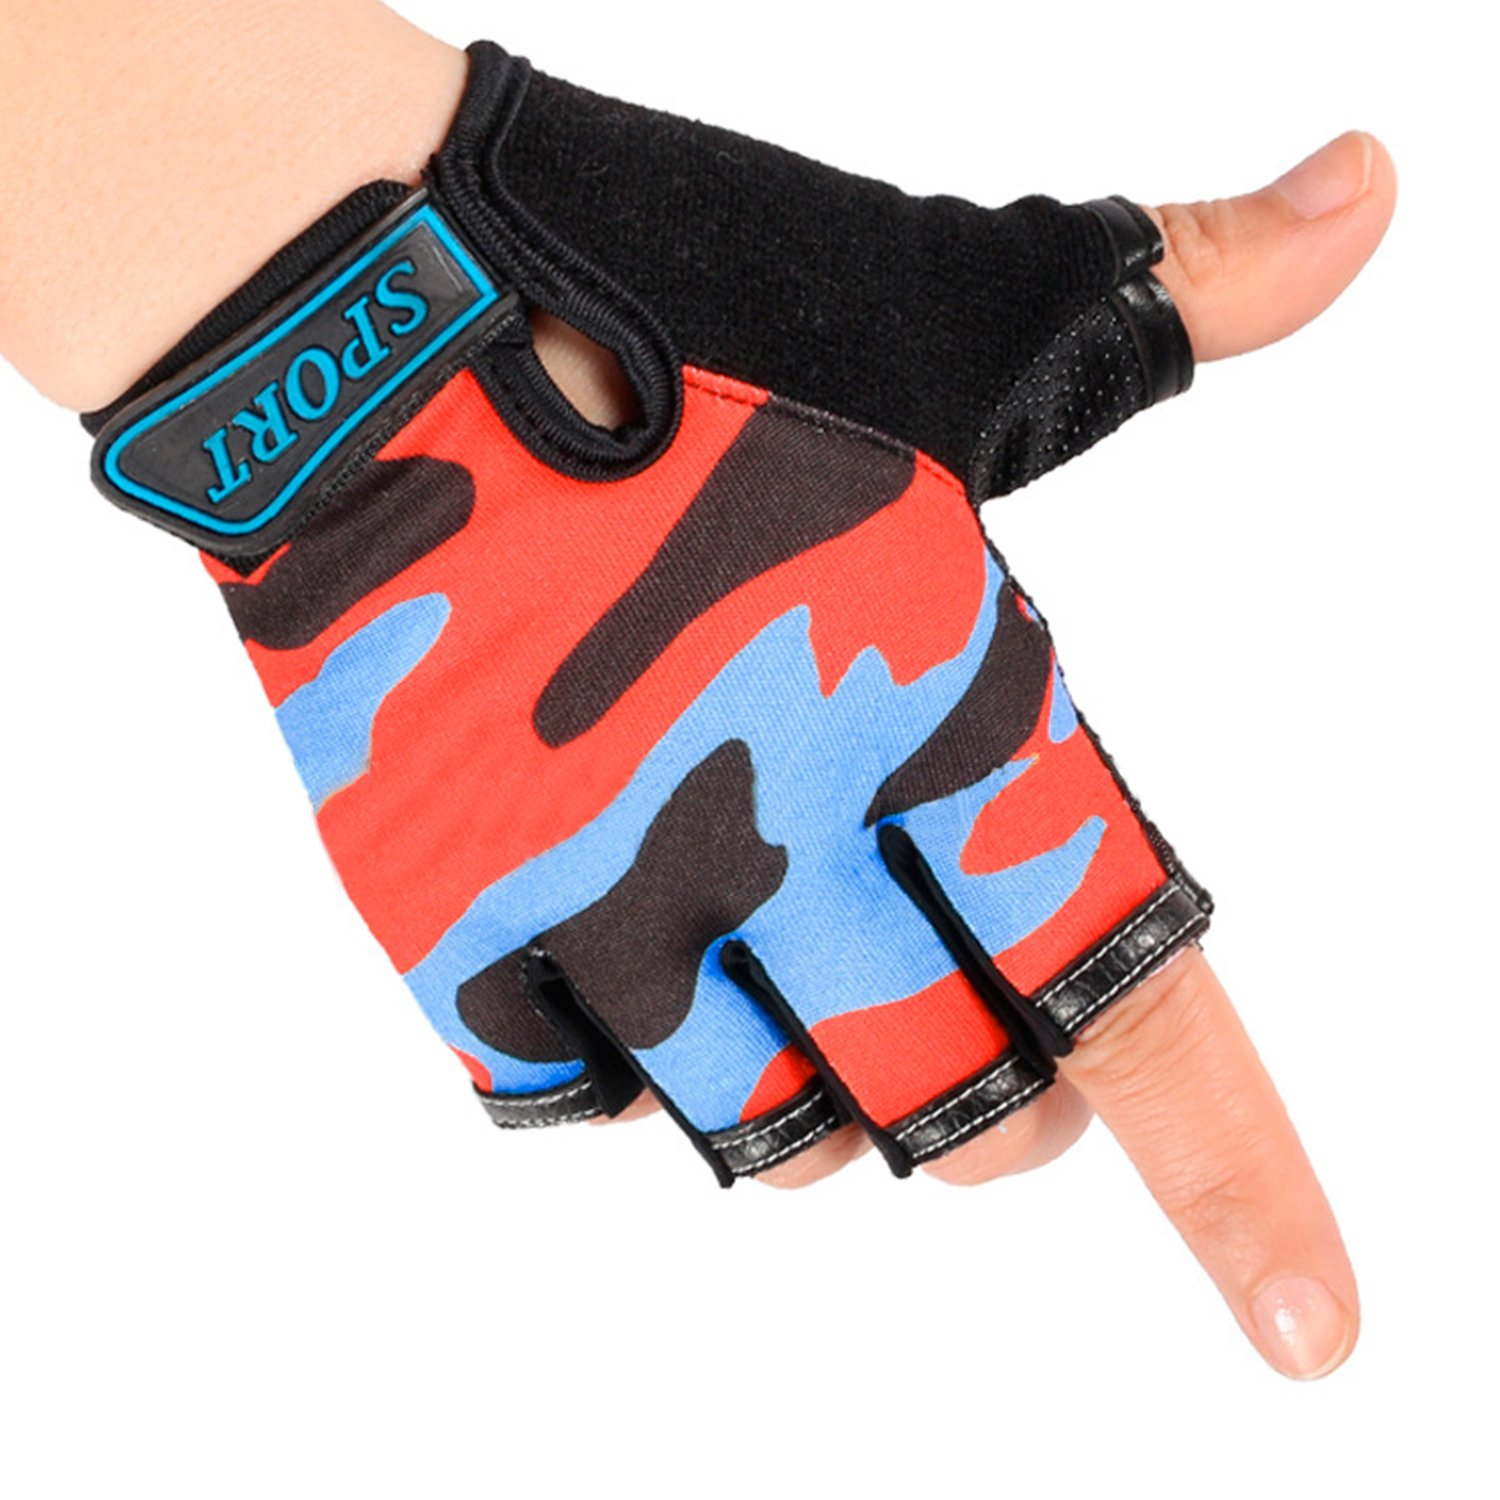 Kids Boys Girls Women Men Small Hand Half Finger Summer Bicycle Cycling Gloves Roller-skating Gloves Breathable Outdoor Sports Cycling Riding Climbing Scooter Bike Gloves Gift